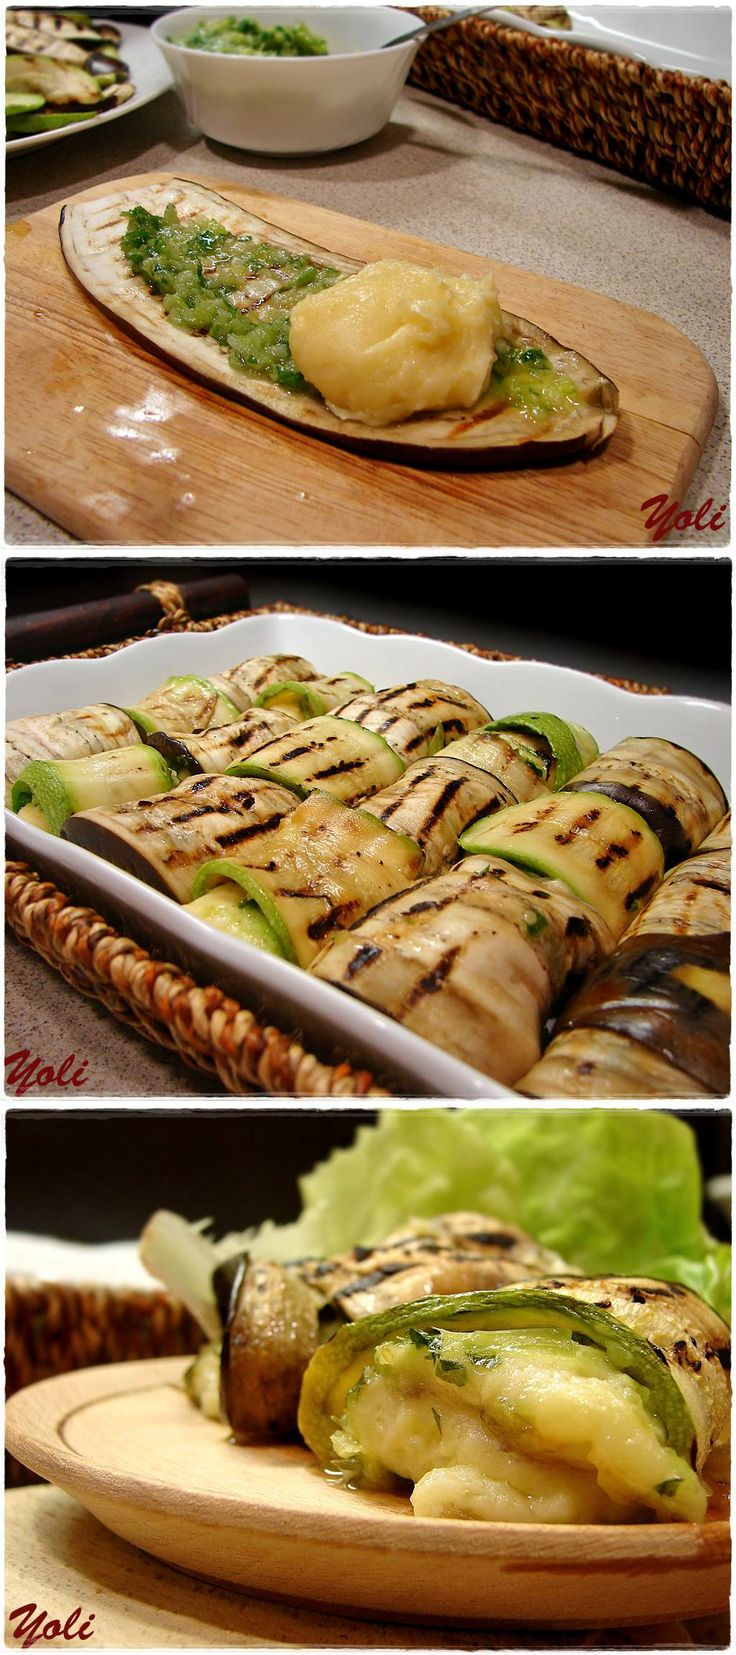 Vegetable rolls with cream cheese